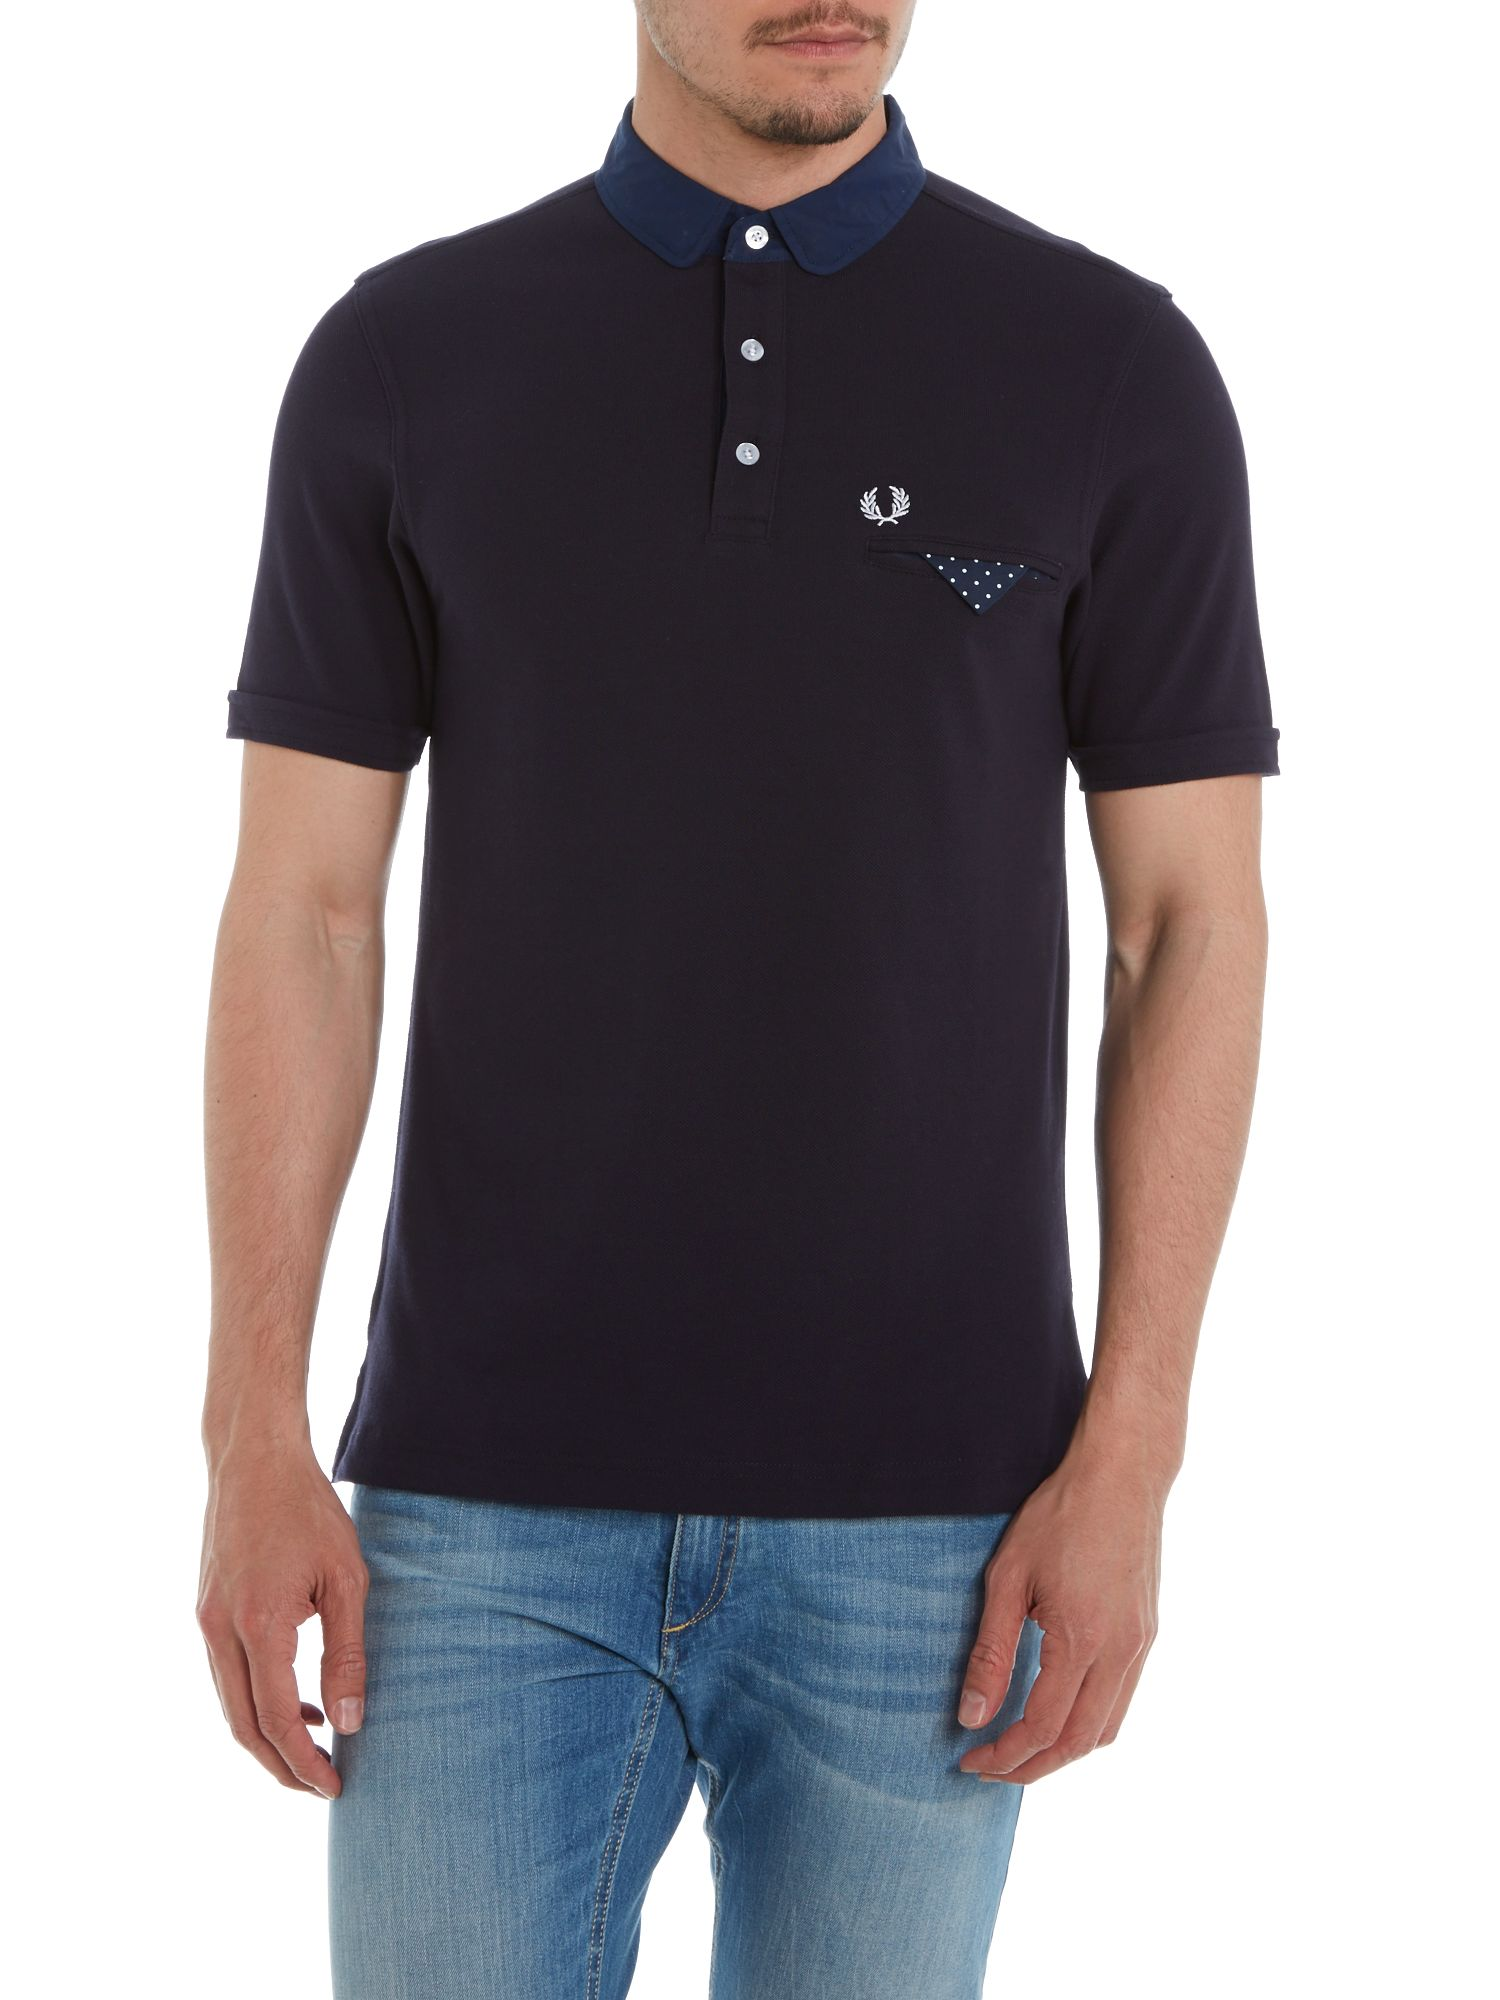 Jetted pocket penny collar polo